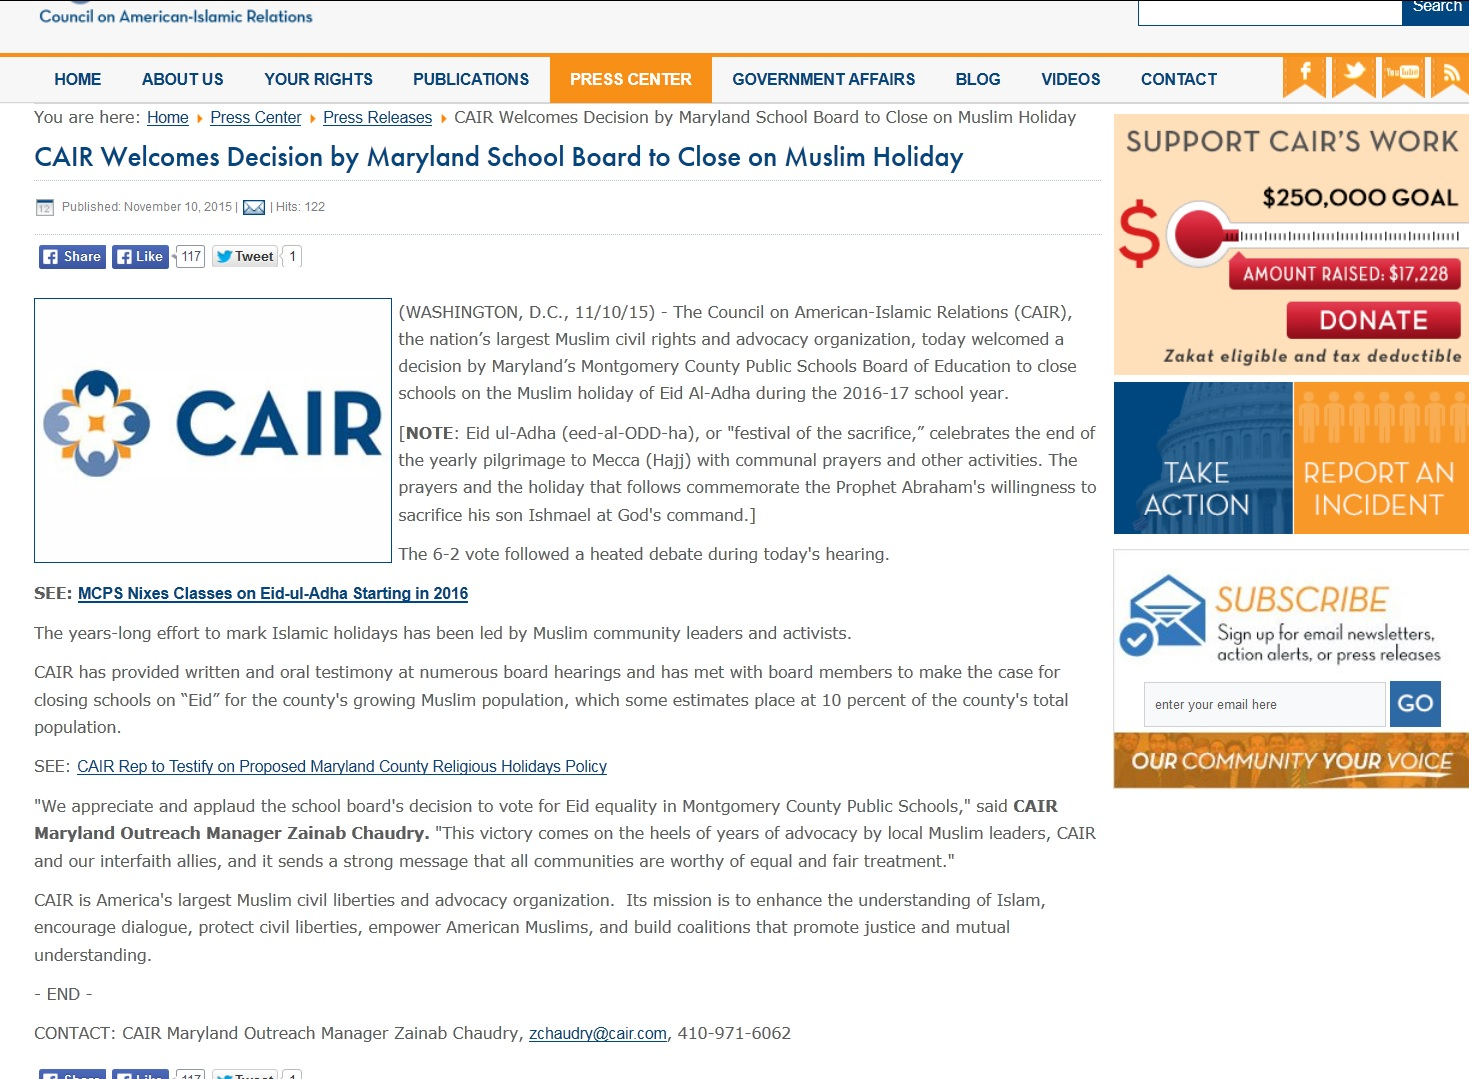 Nov_10_2015__CAIR_Welcomes_Decision_by_Maryland_School_Board_to_Close_on_Muslim_Holiday.jpg